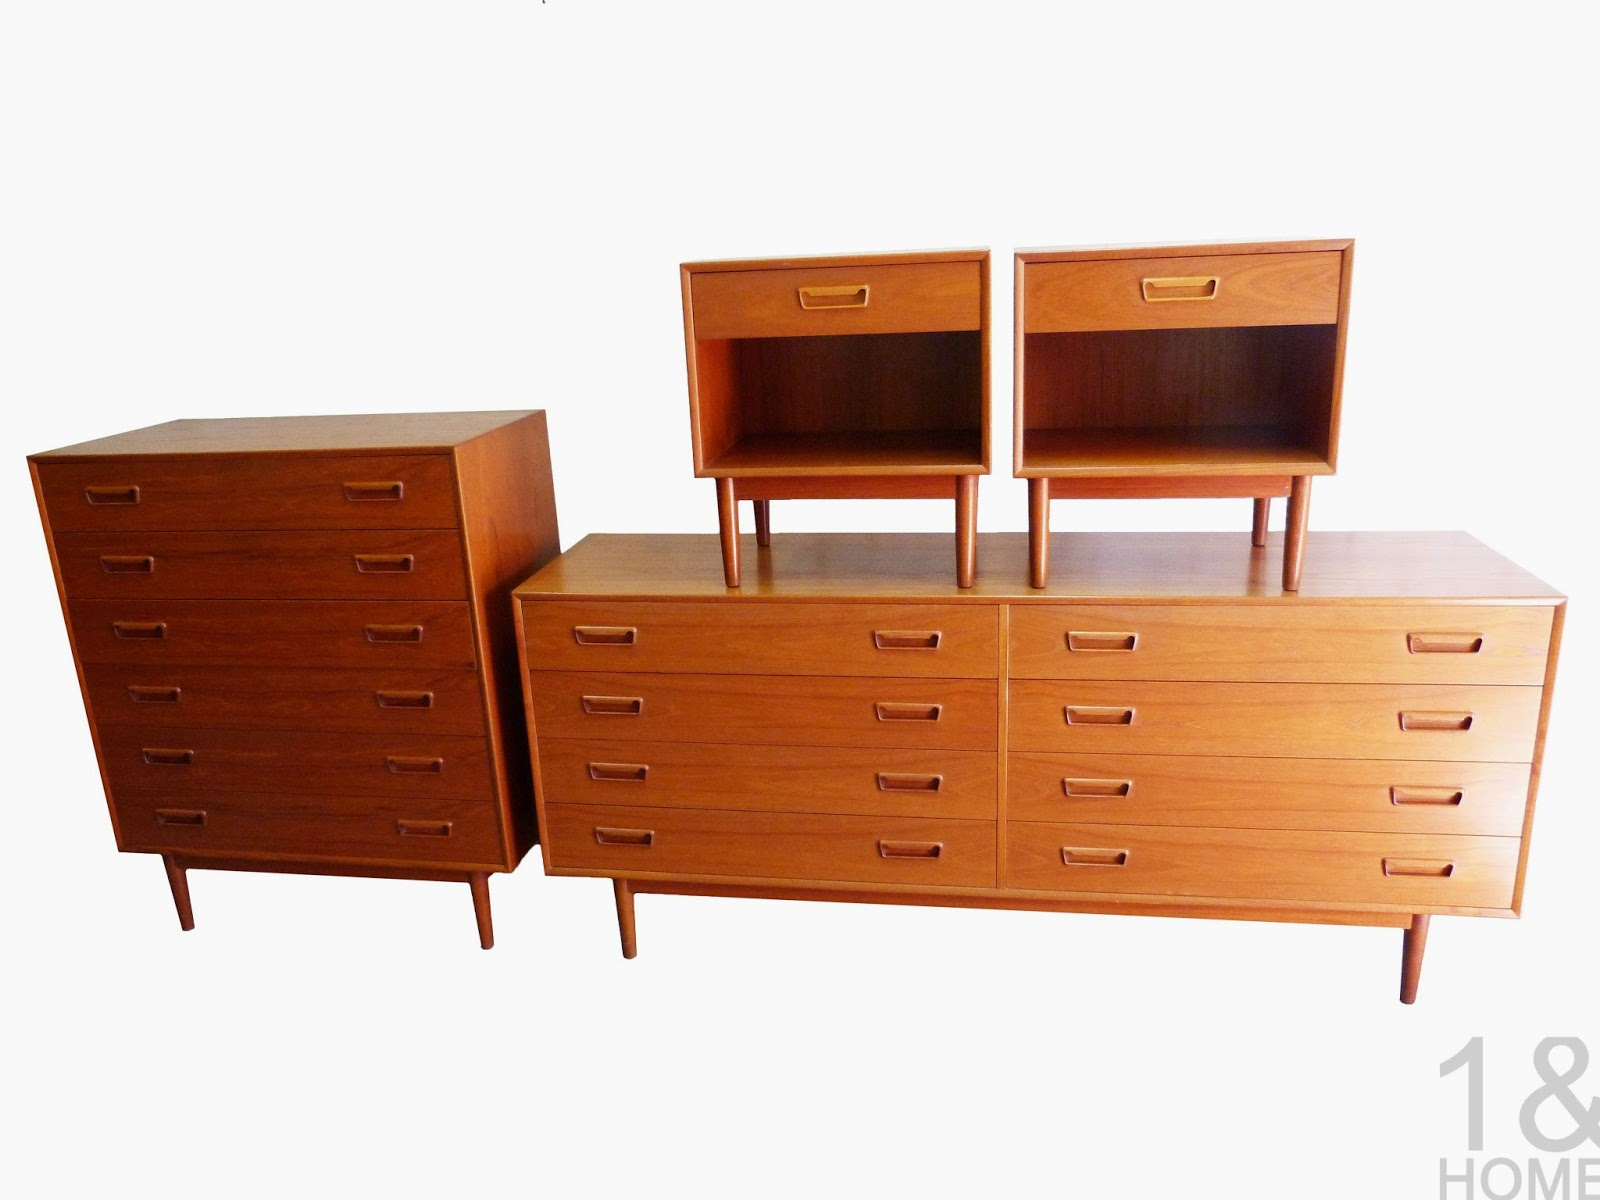 Modern mid century danish vintage furniture shop used restoration repair denver - Danish furniture designers ...